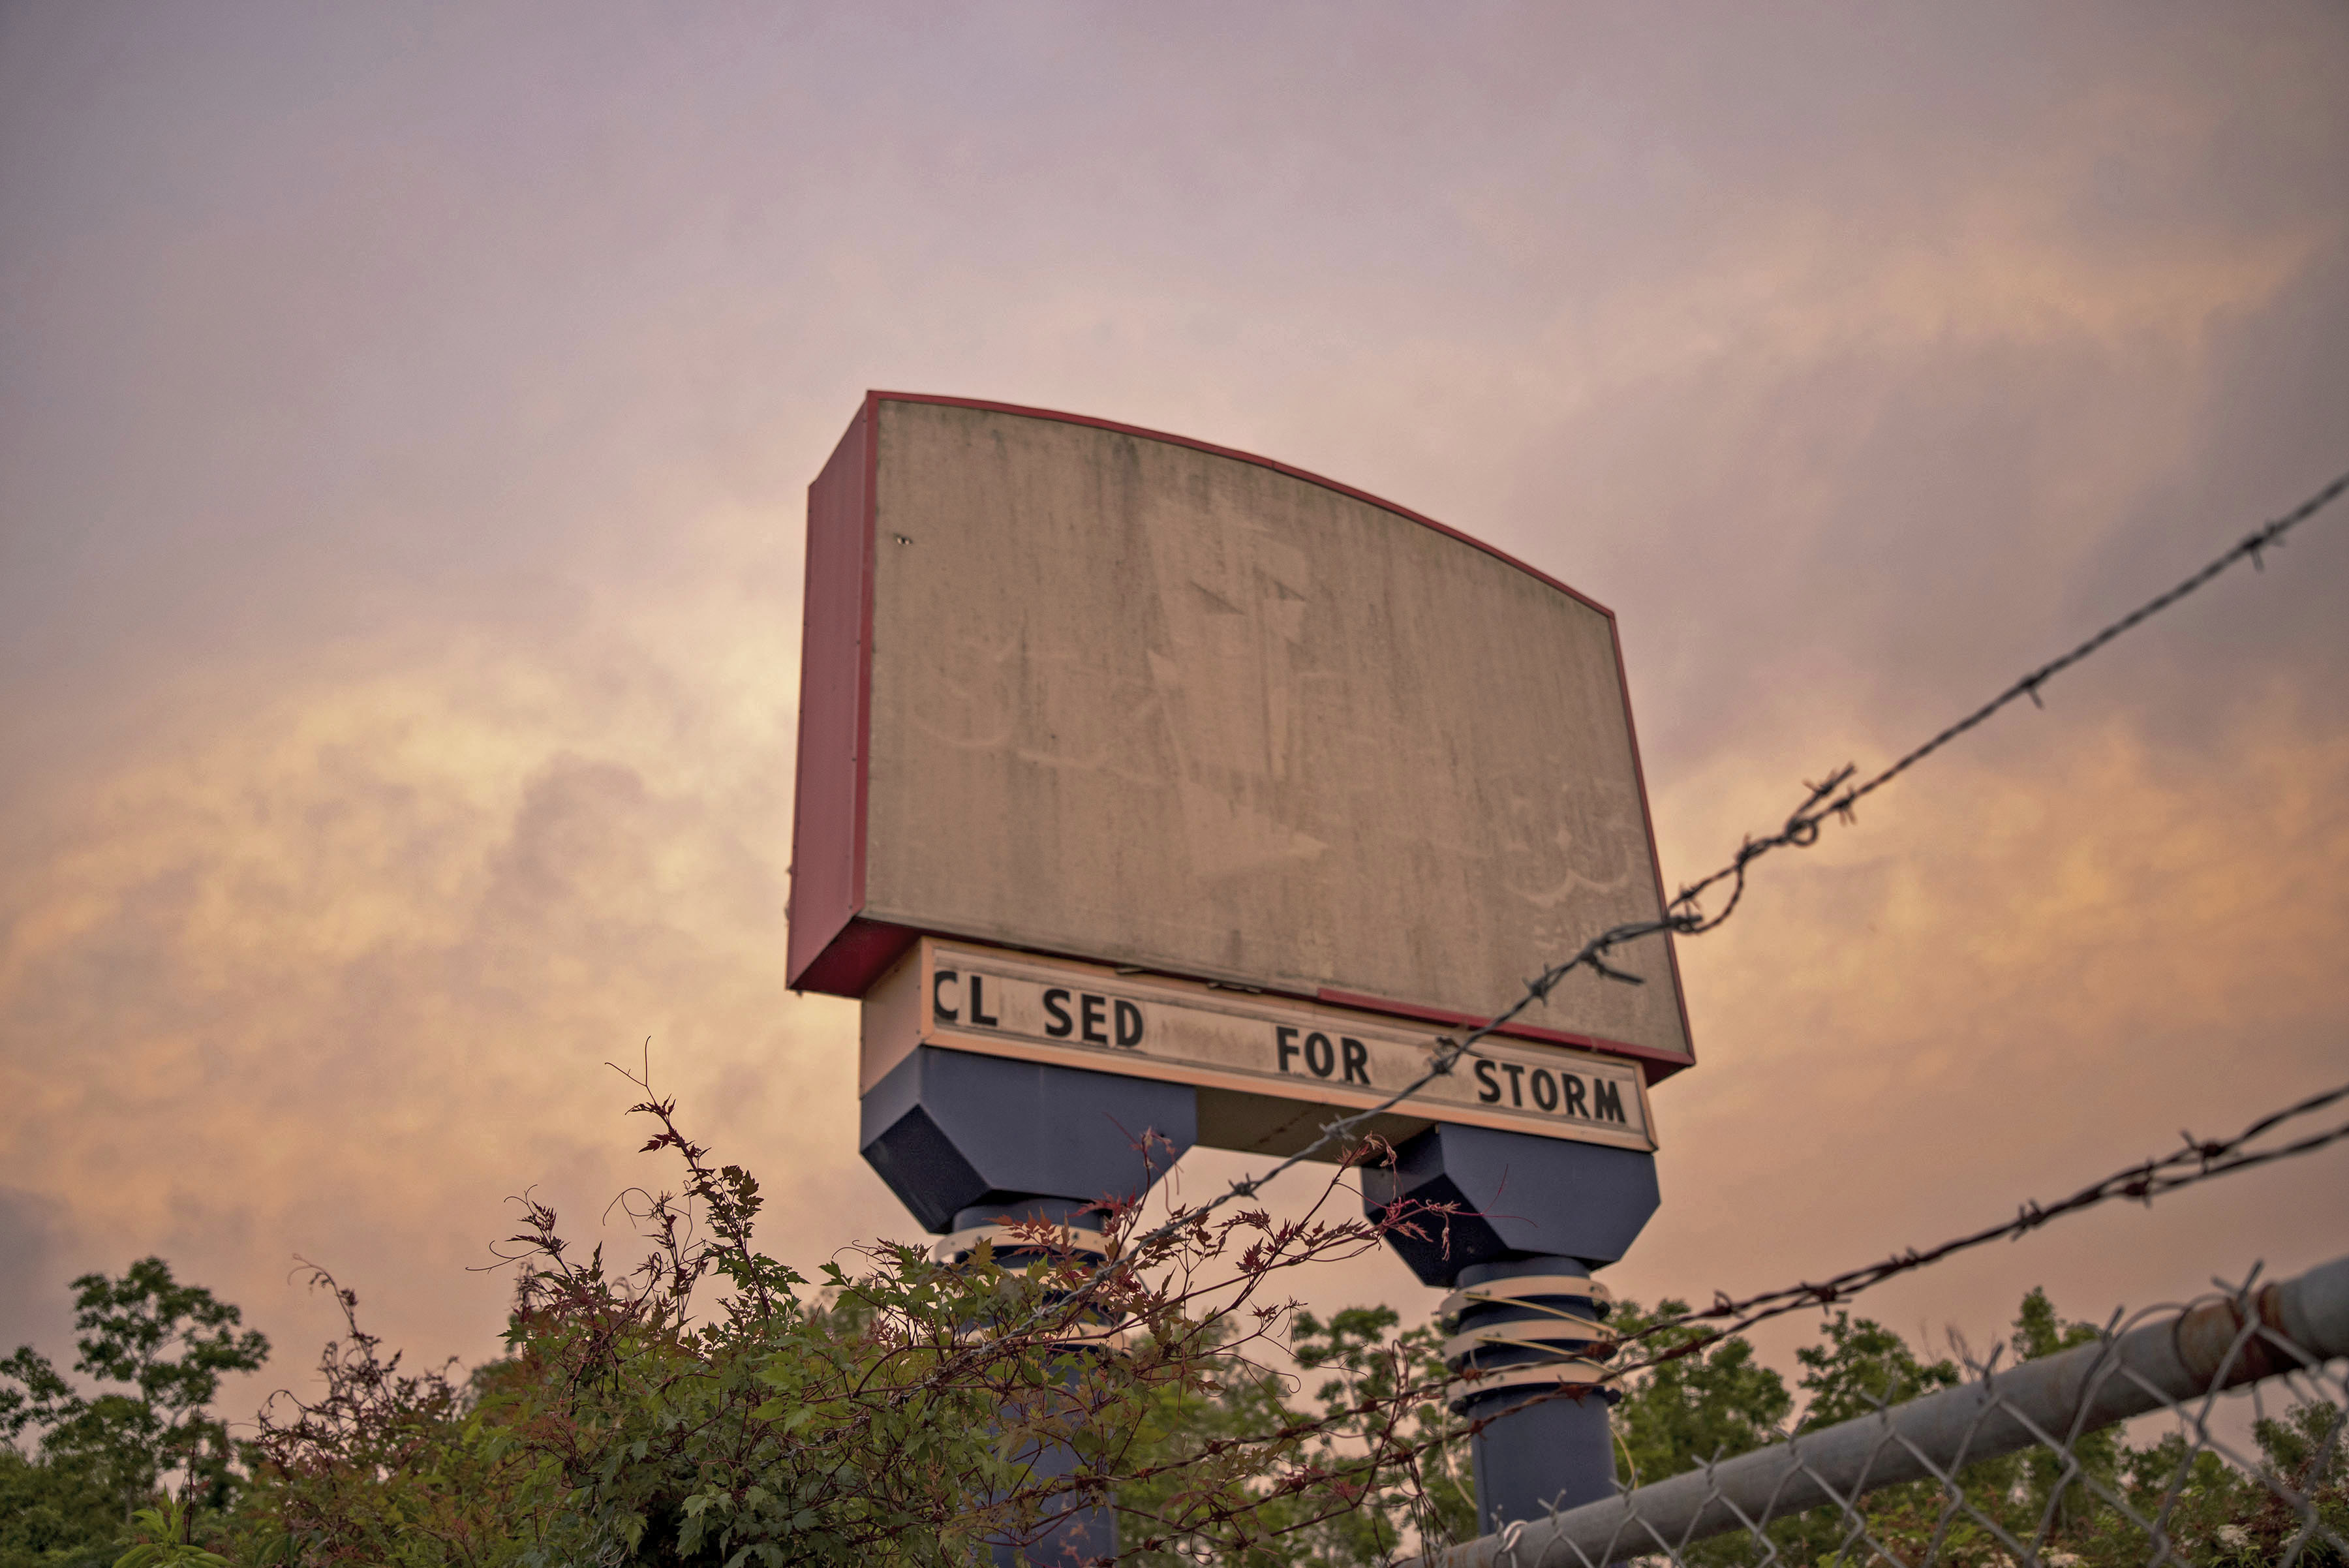 A derelict billboard from a foreclosed amusement park.